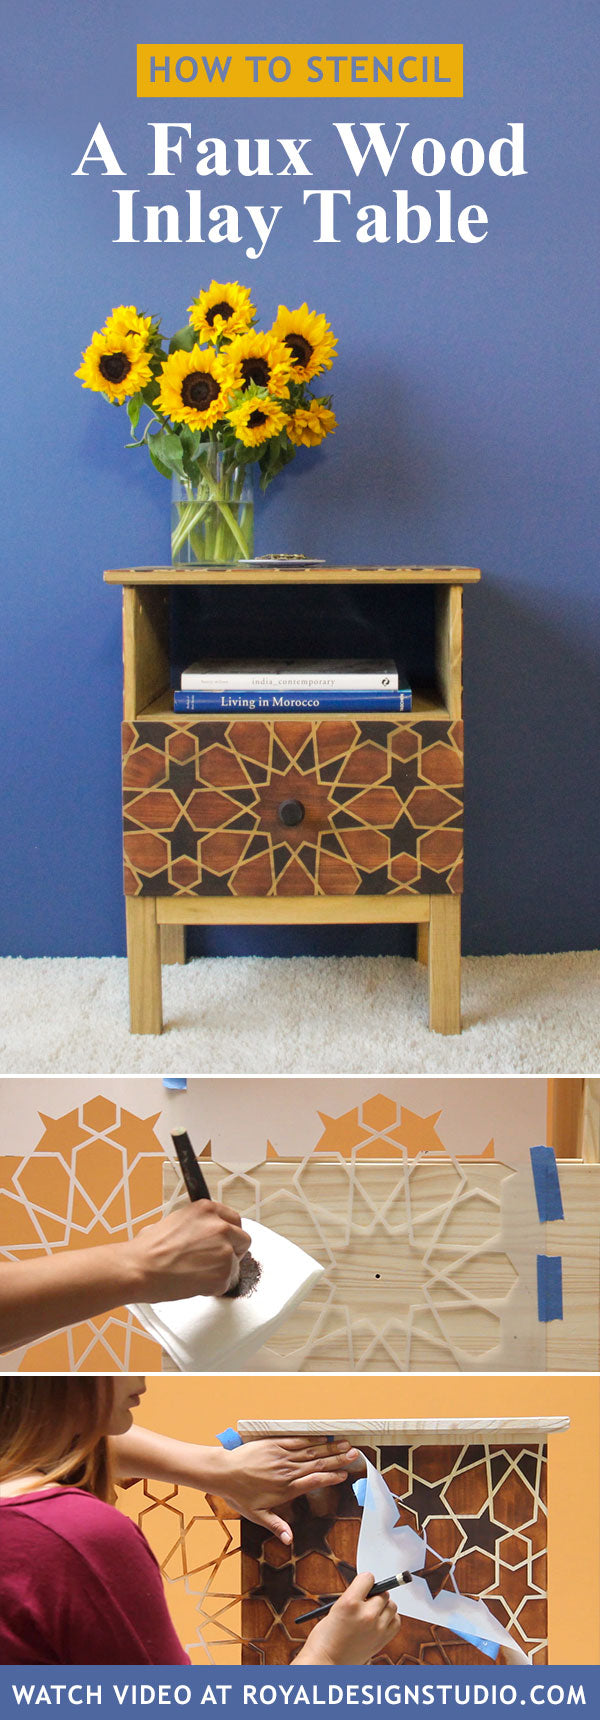 How To Stencil Amp Stain Furniture With A Diy Faux Wood